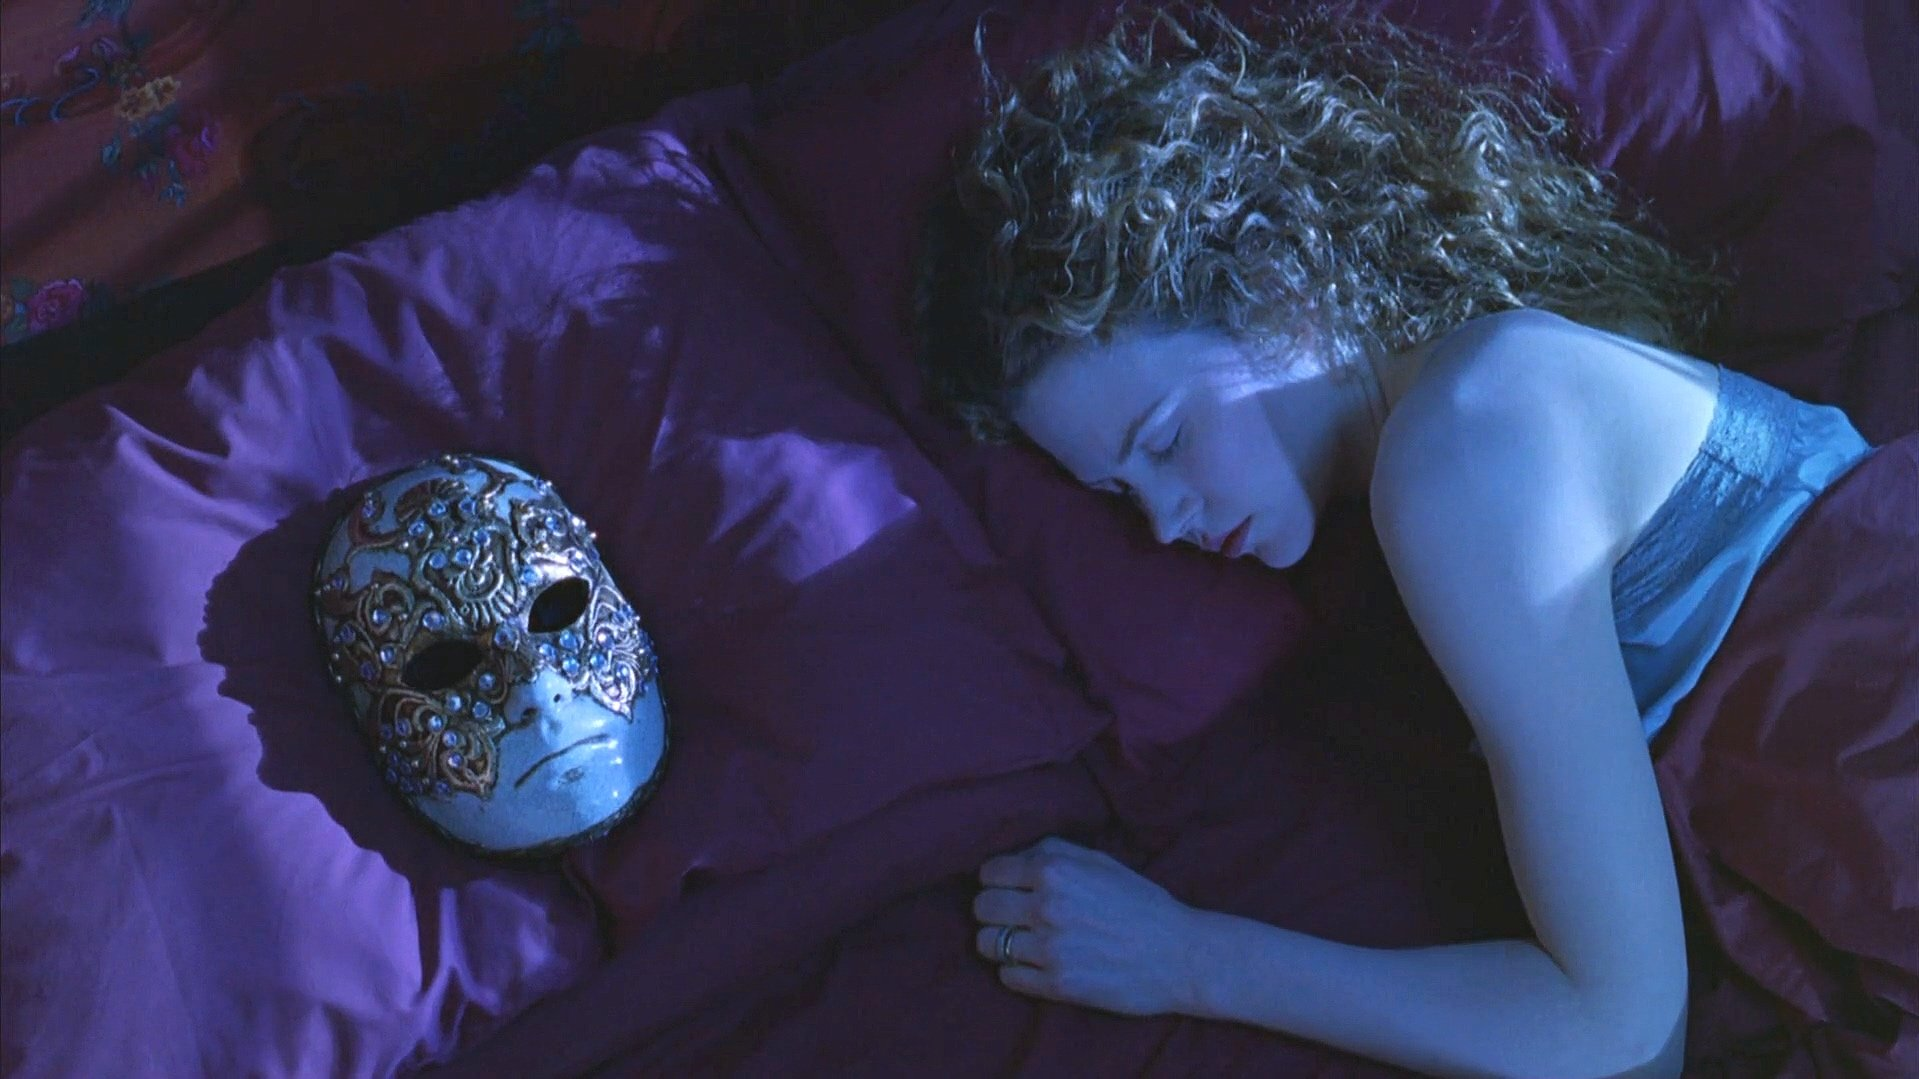 1.+EWS+Mask+on+Pillow+&+Alice+[Edited]